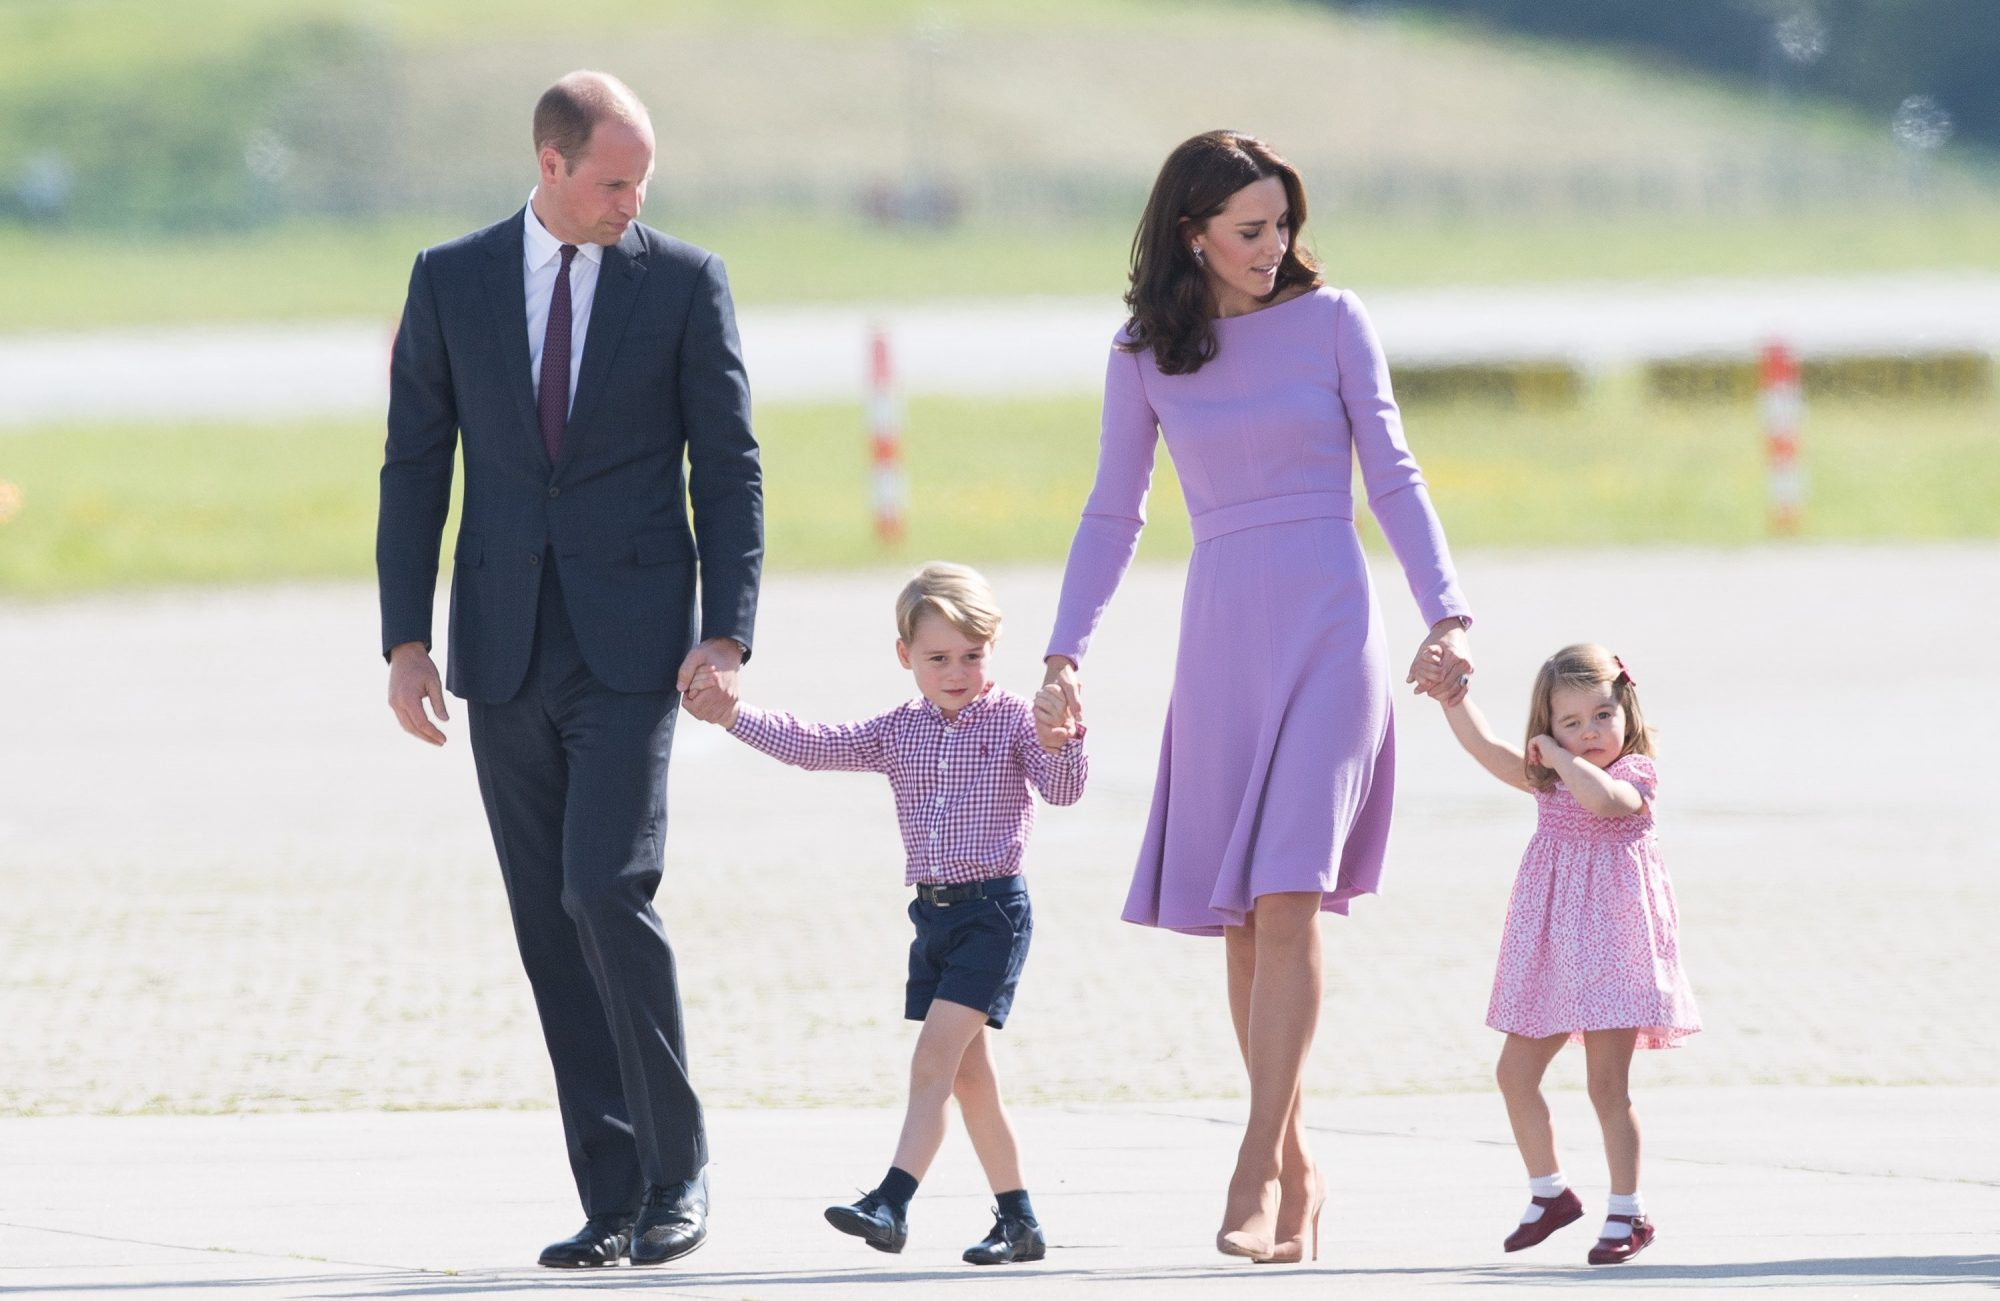 HAMBURG, GERMANY - JULY 21: Prince William, Duke of Cambridge, Prince George, Princess Charlotte of Cambridge and Catherine, Duchess of Cambridge view helicopter models H145 and H135 before departing from Hamburg airport on the last day of their official visit to Poland and Germany on July 21, 2017 in Hamburg, Germany. (Photo by Samir Hussein/WireImage)